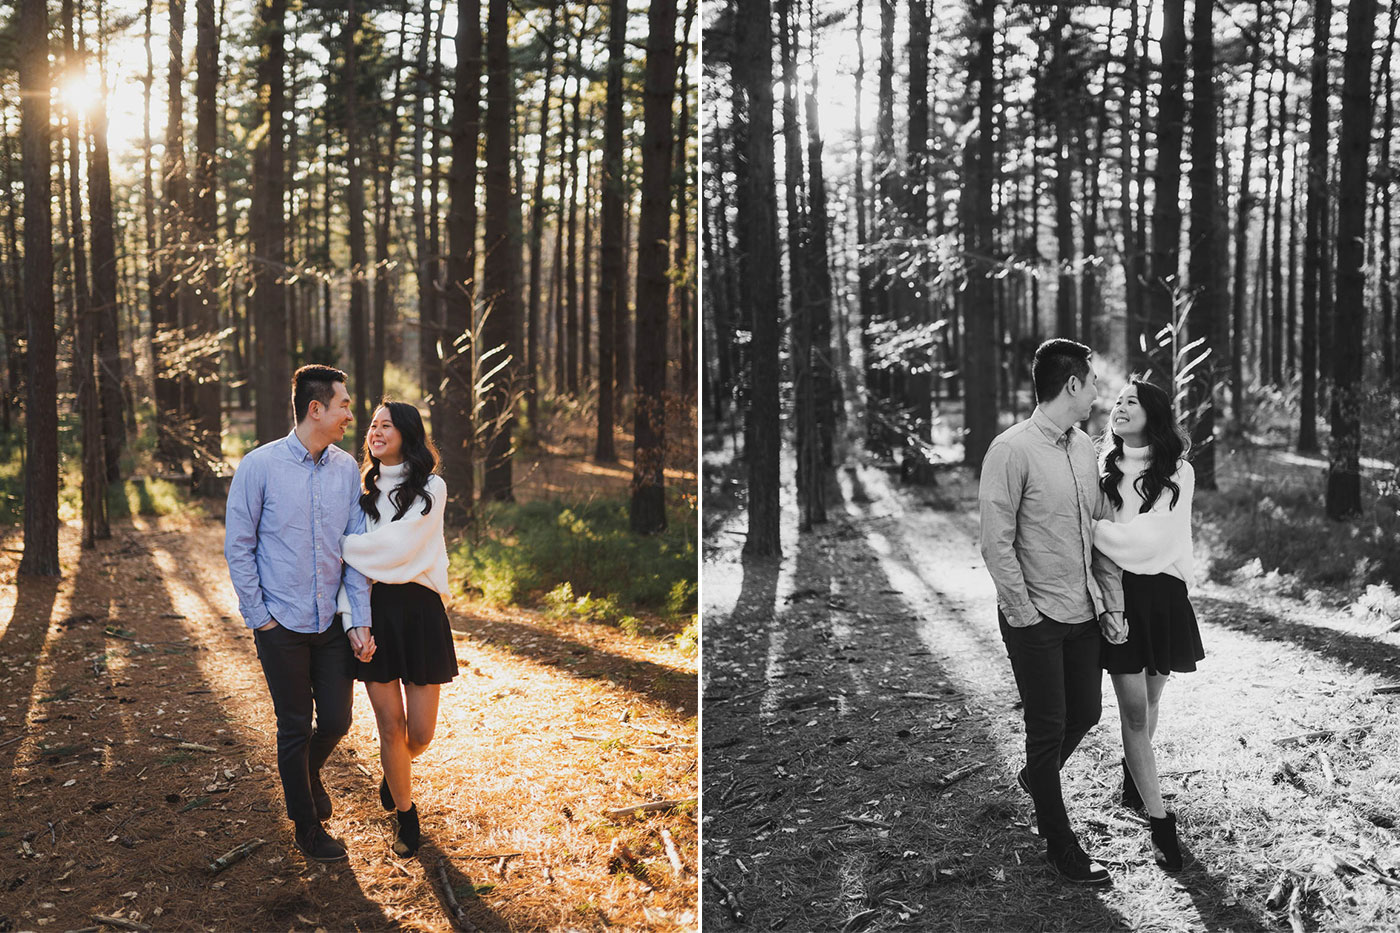 e-session photos at Prosser Pines in Long Island